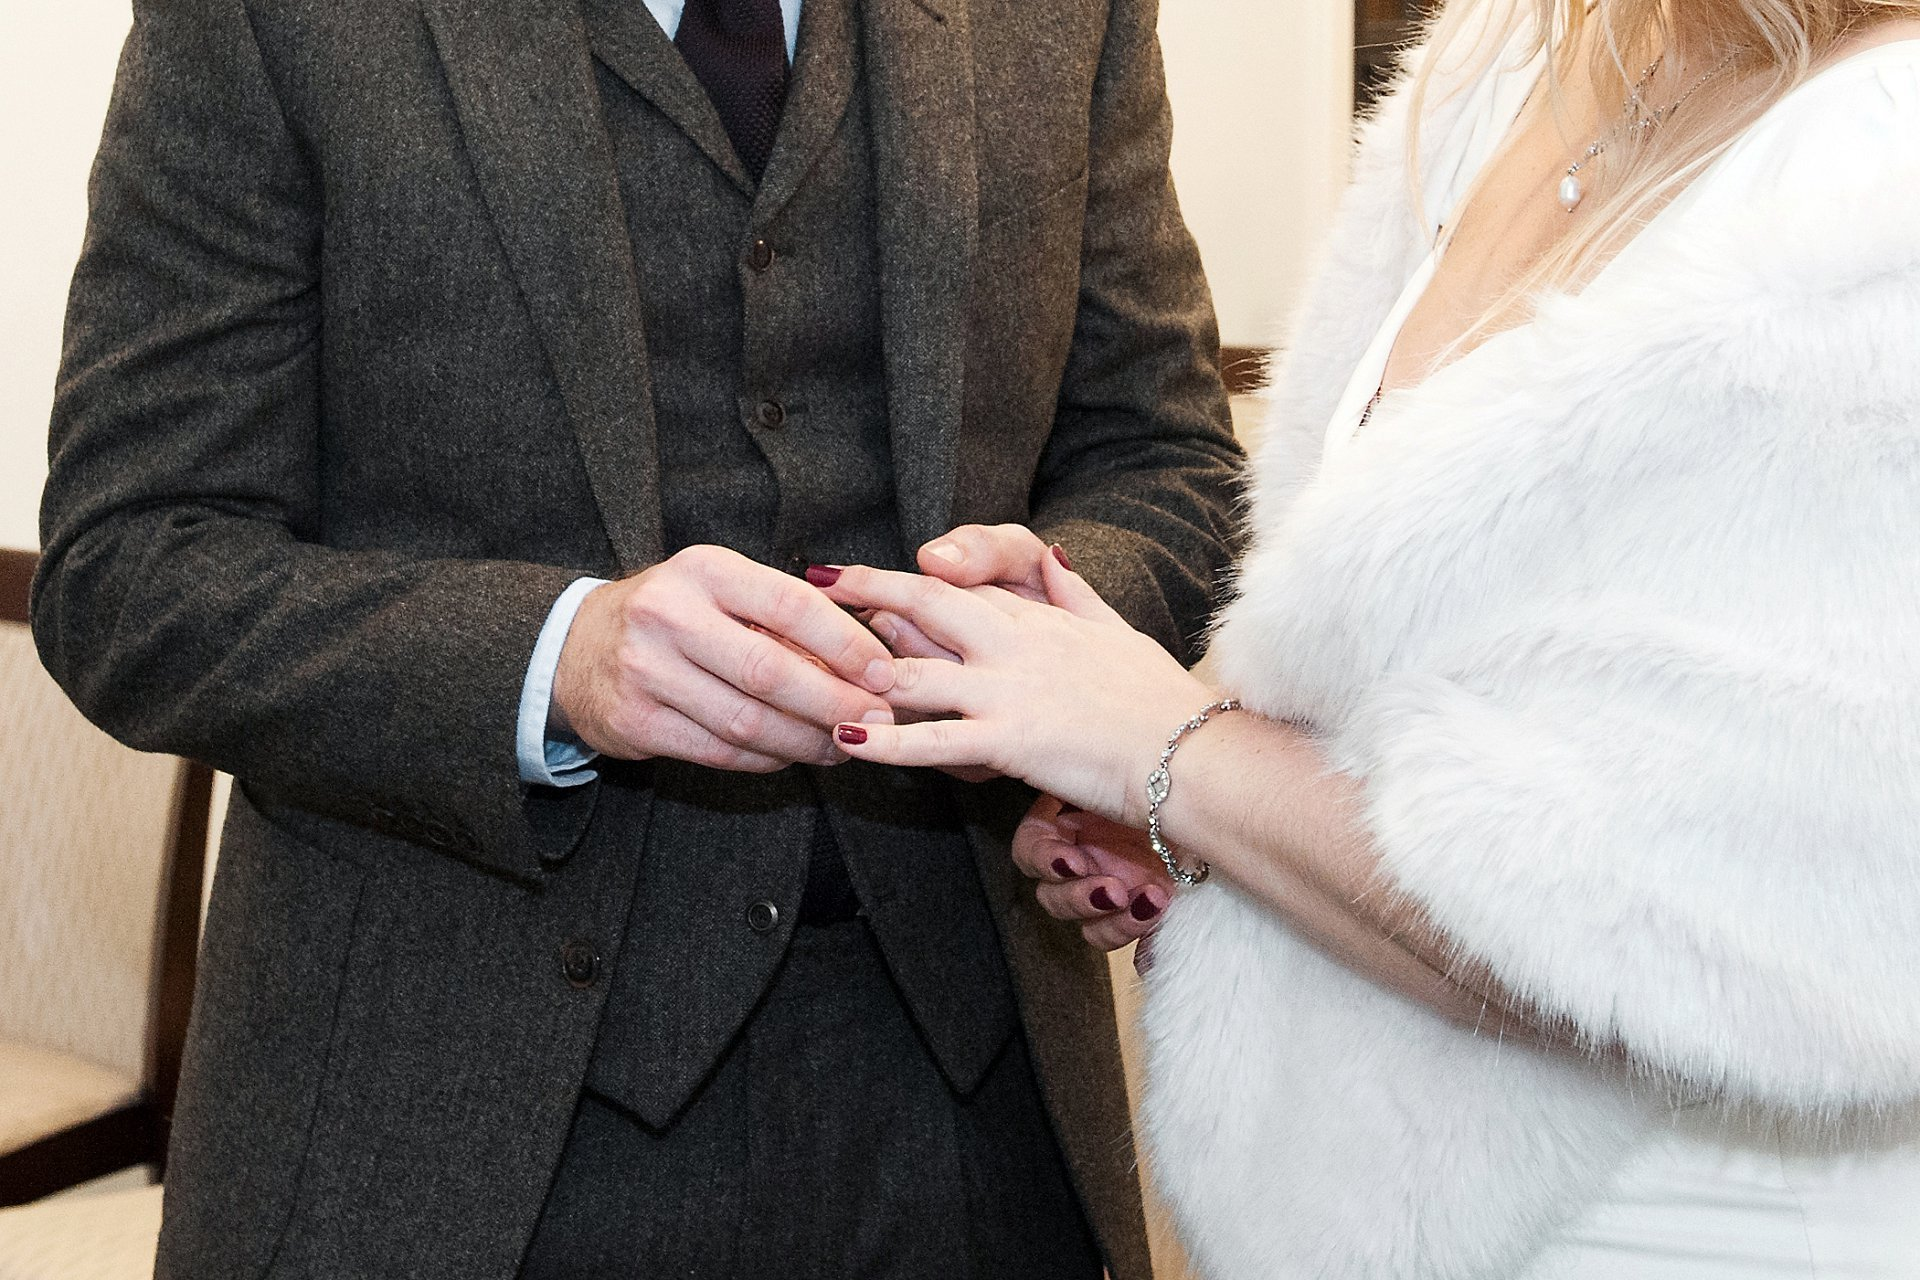 The groom places the wedding band on his bride's finger during this Marylebone Room ceremony at Mayfair Library